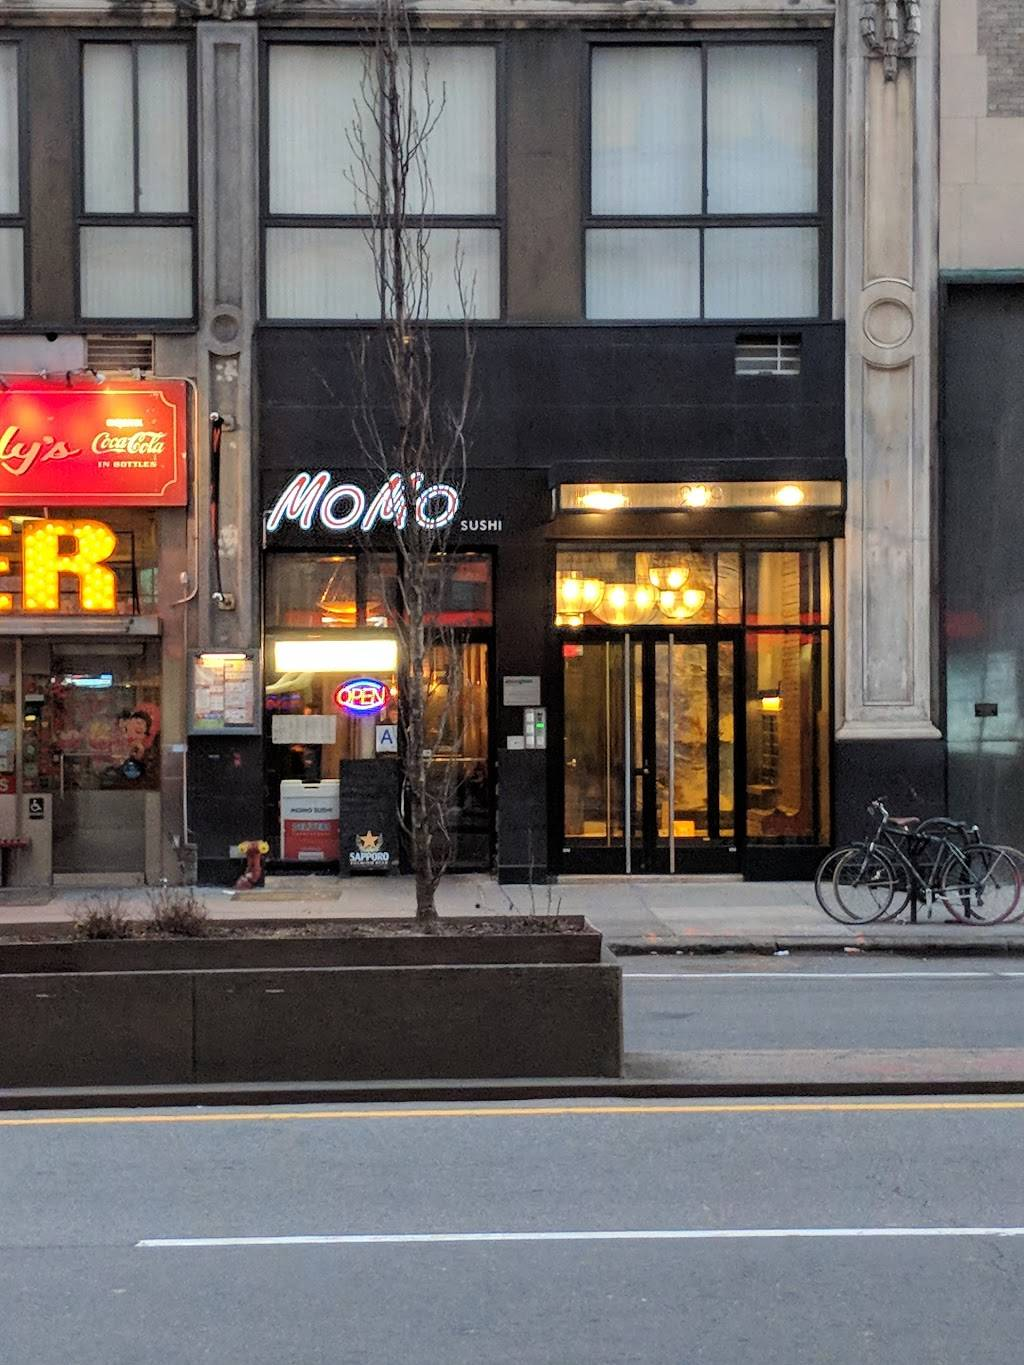 MoMo Sushi | restaurant | 239 Park Ave S, New York, NY 10003, USA | 2126777001 OR +1 212-677-7001